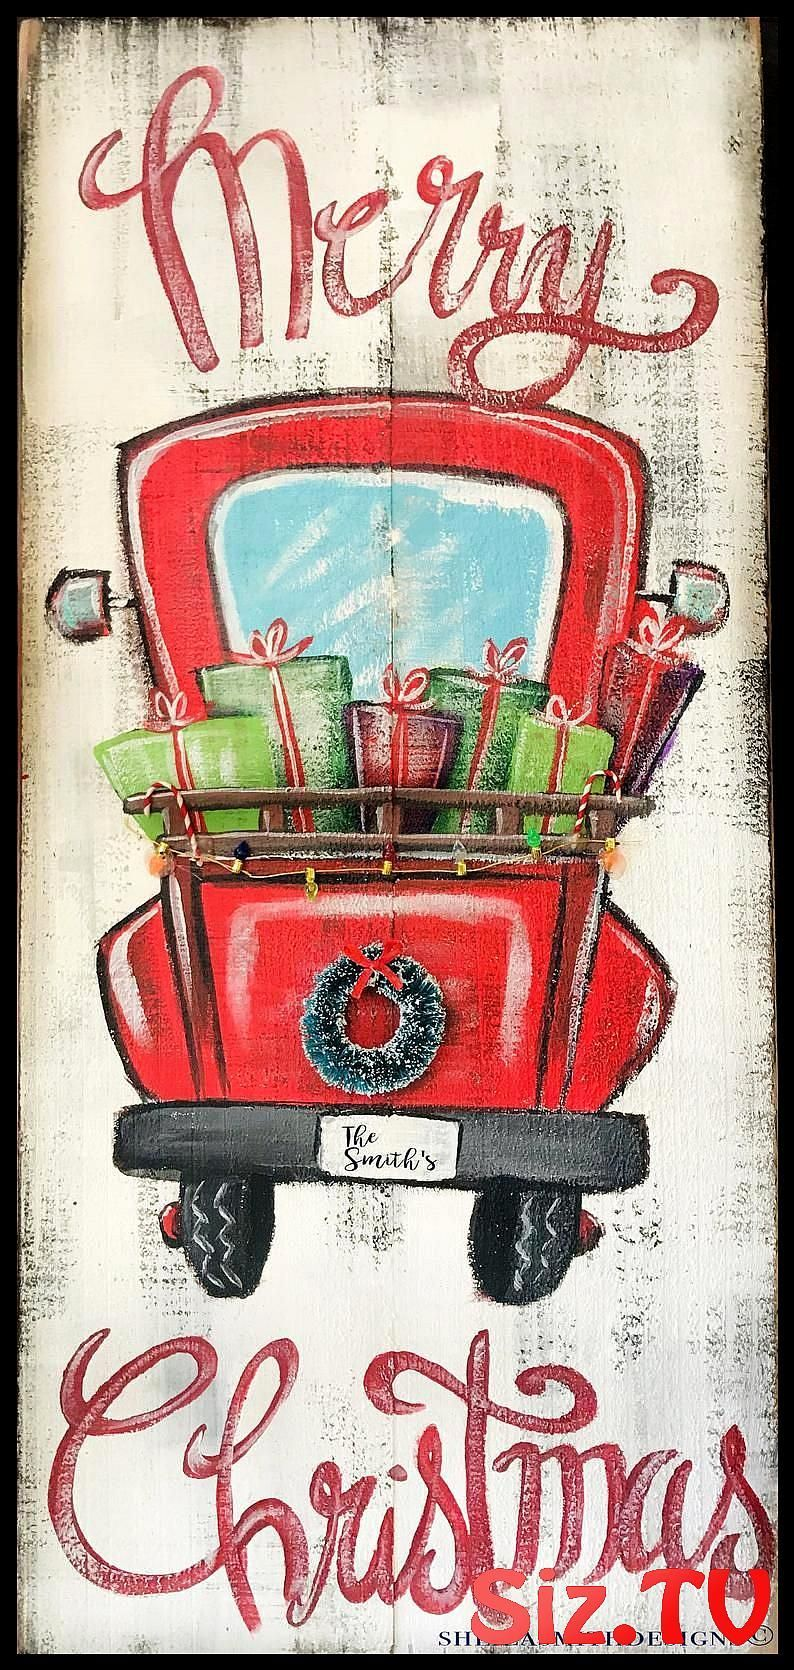 Christmas Red Truck Sign Merry Christmas Sign Red Truck And Wreath Christmas Red Truck Christmas Decor Christmas Sign Merry Christmas Red Truck Sign Merry Christmas Sign Red Truck And Wreath Christmas Red Truck Christmas Decor Christmas Sign This Beautiful Red Truck Rustic Merry Christmas Sign IsMerry Christmas Red Truck Sign Merry Ch...